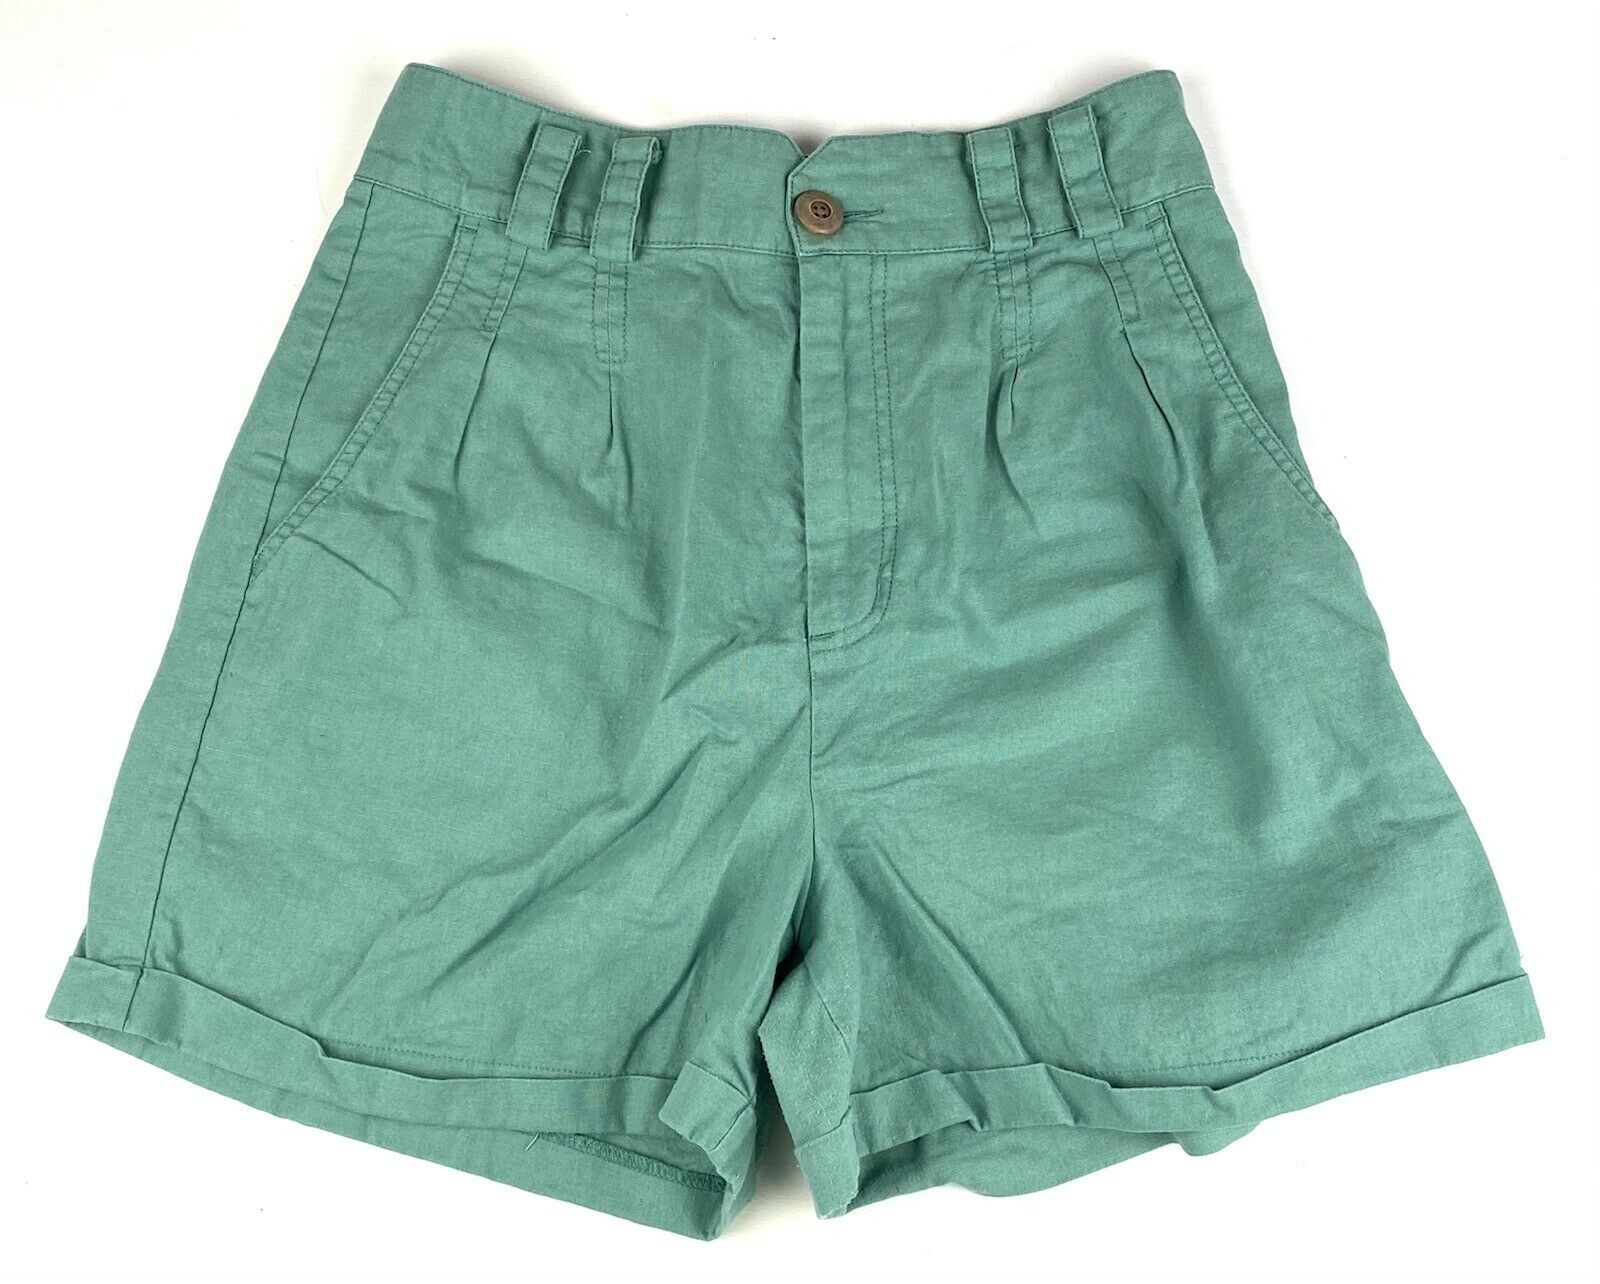 Urban Outfitters Womens Linen blend pleated Shorts Sz 8 green